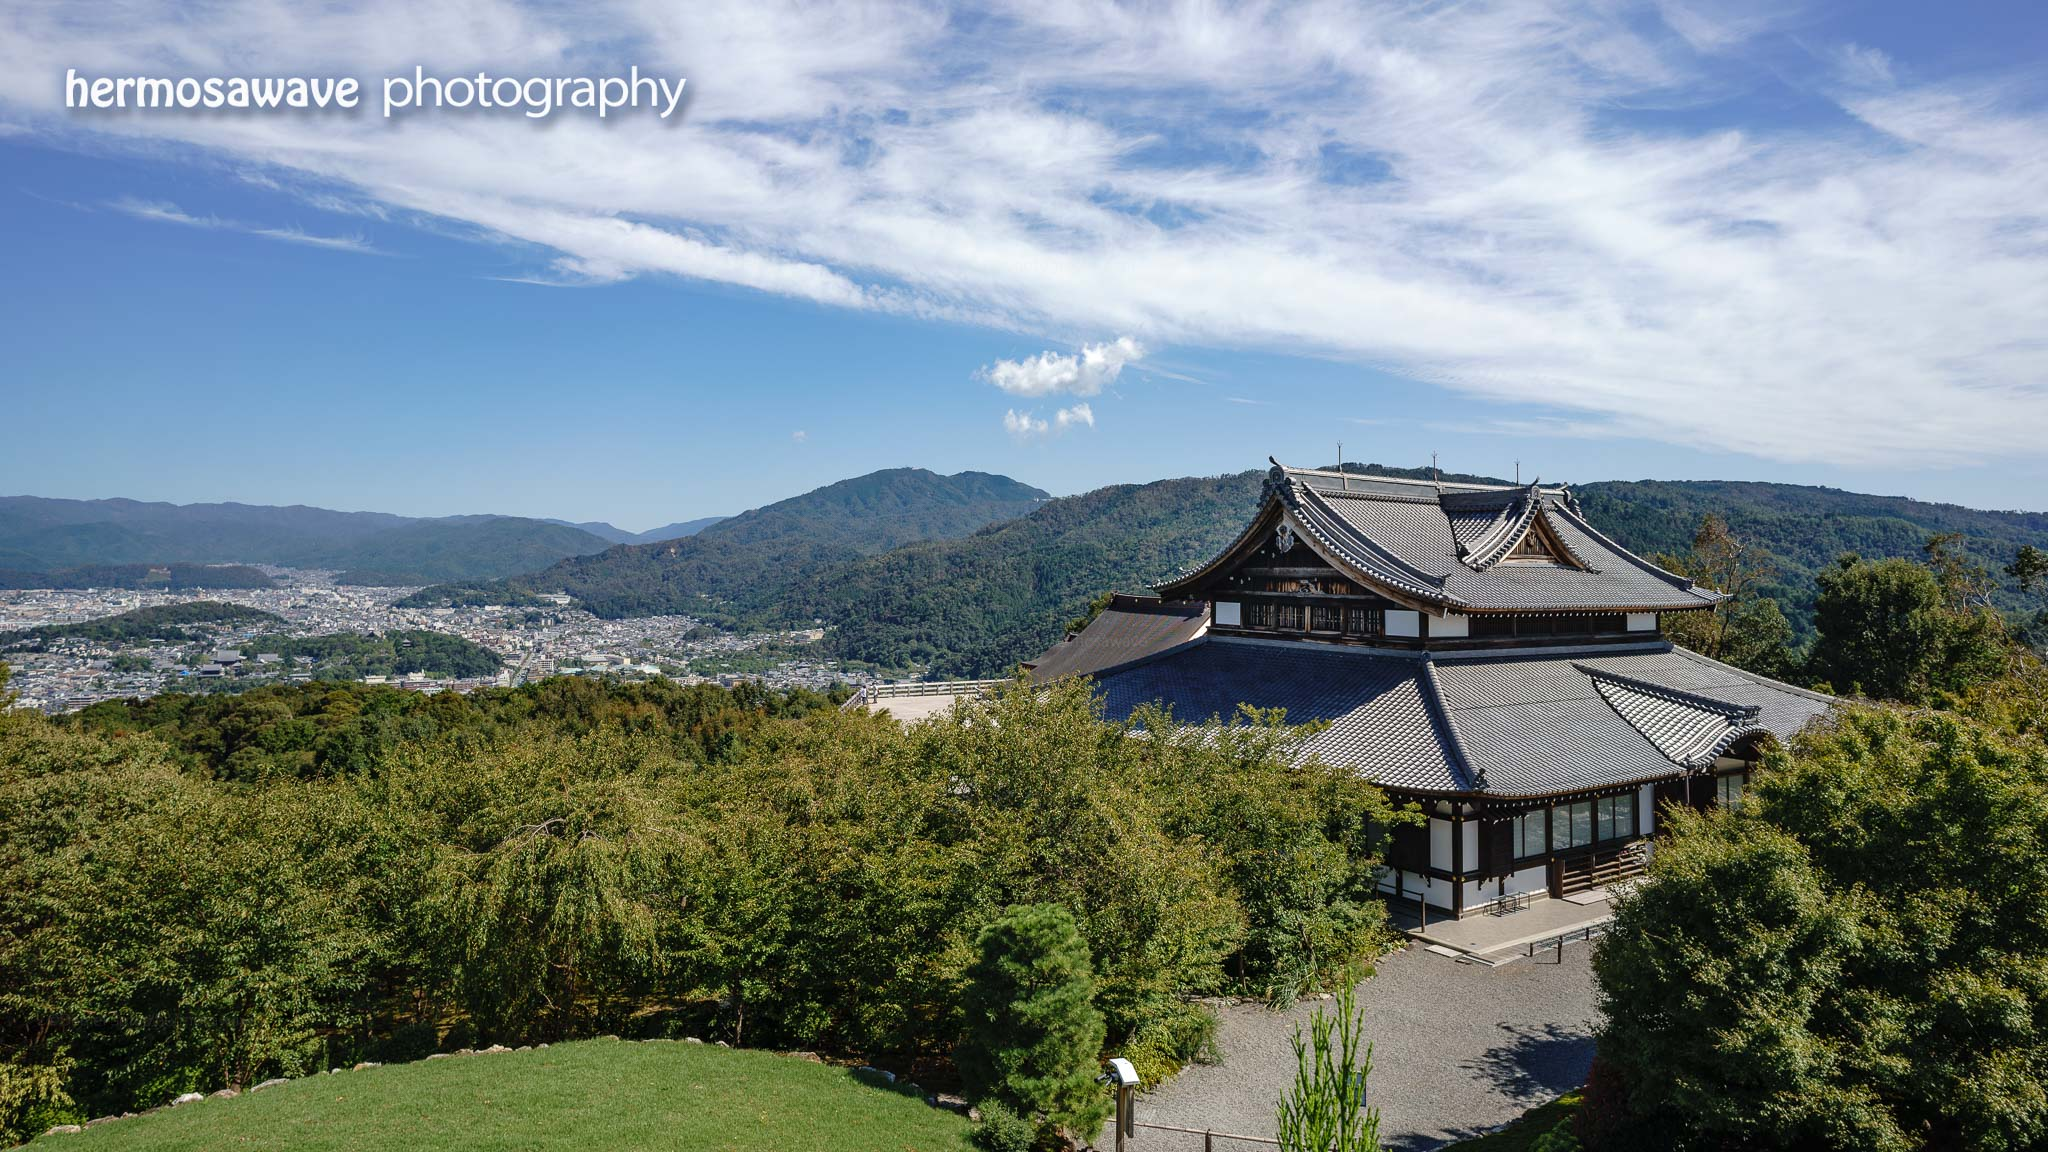 View from Shogun-zuka